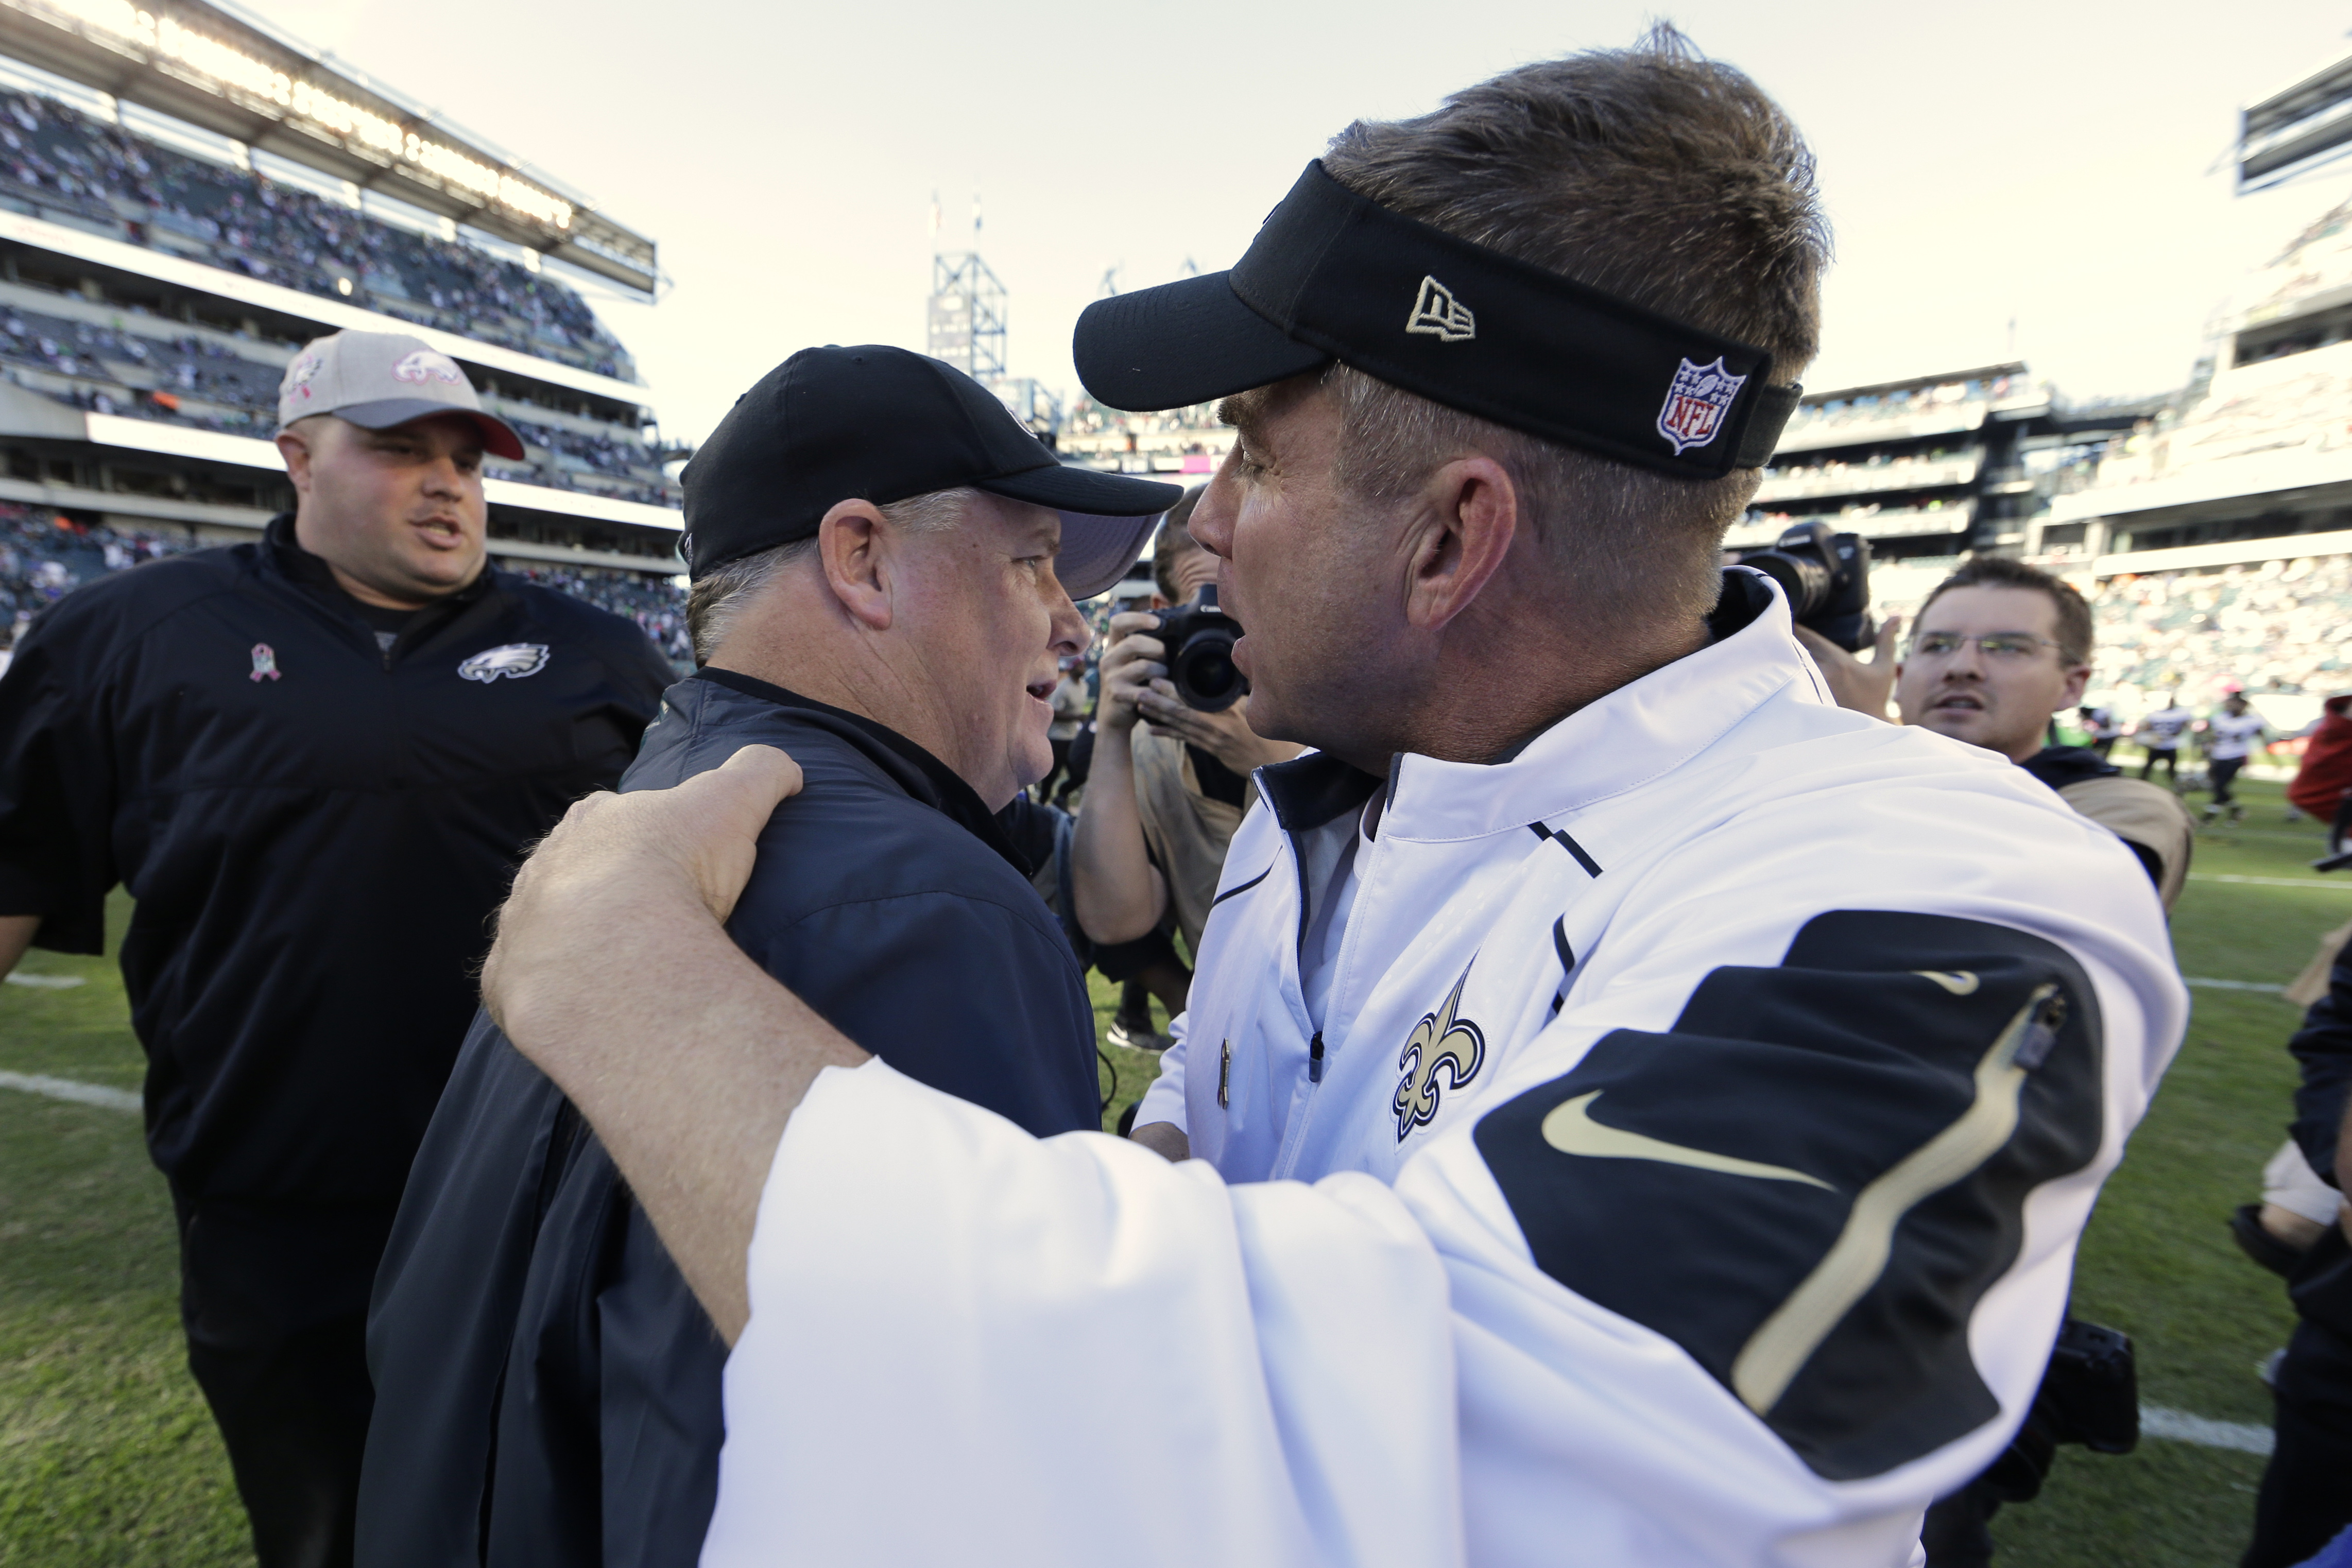 New Orleans Saints head coach Sean Payton, right, and Philadelphia Eagles head coach Chip Kelly meet after an NFL football game, Sunday, Oct. 11, 2015, in Philadelphia. Philadelphia won 39-17. (AP Photo/Matt Rourke)